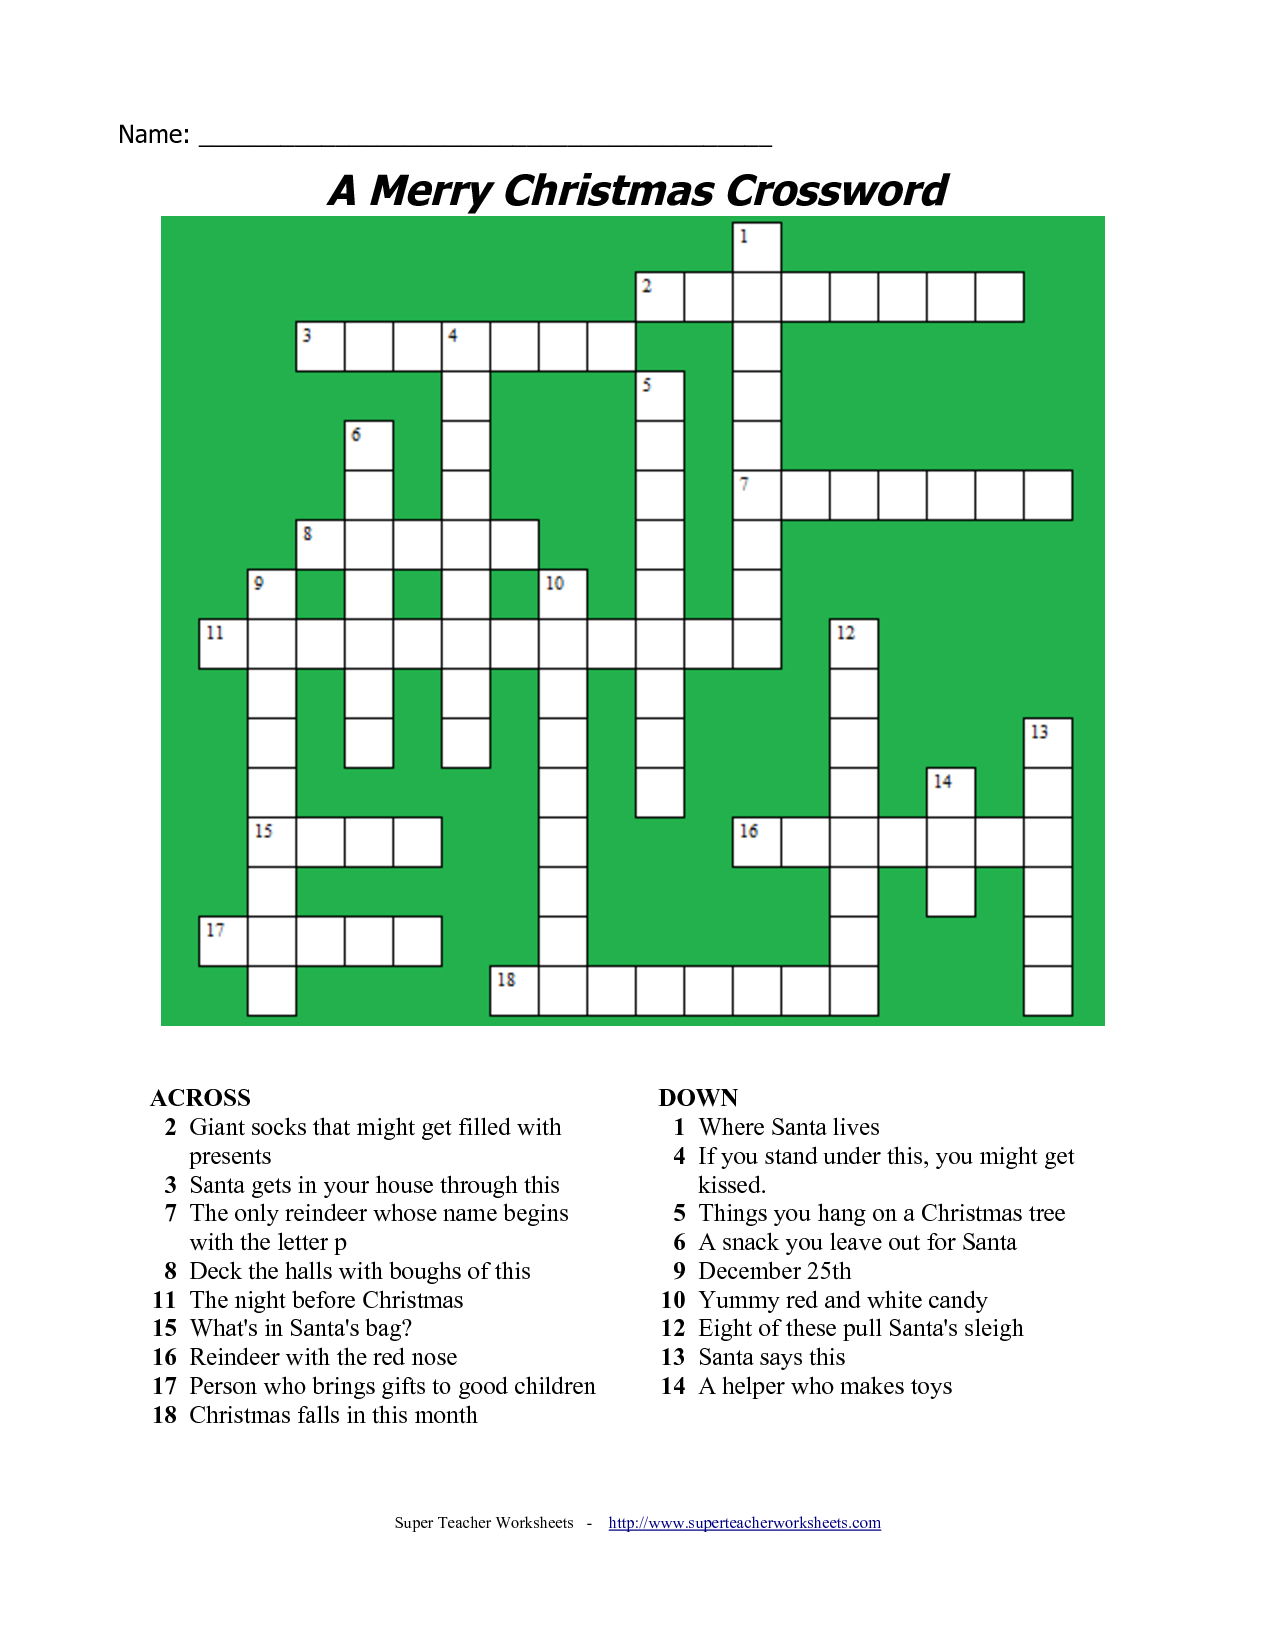 20 Fun Printable Christmas Crossword Puzzles | Kittybabylove - Printable Christmas Crossword Puzzles For Adults With Answers